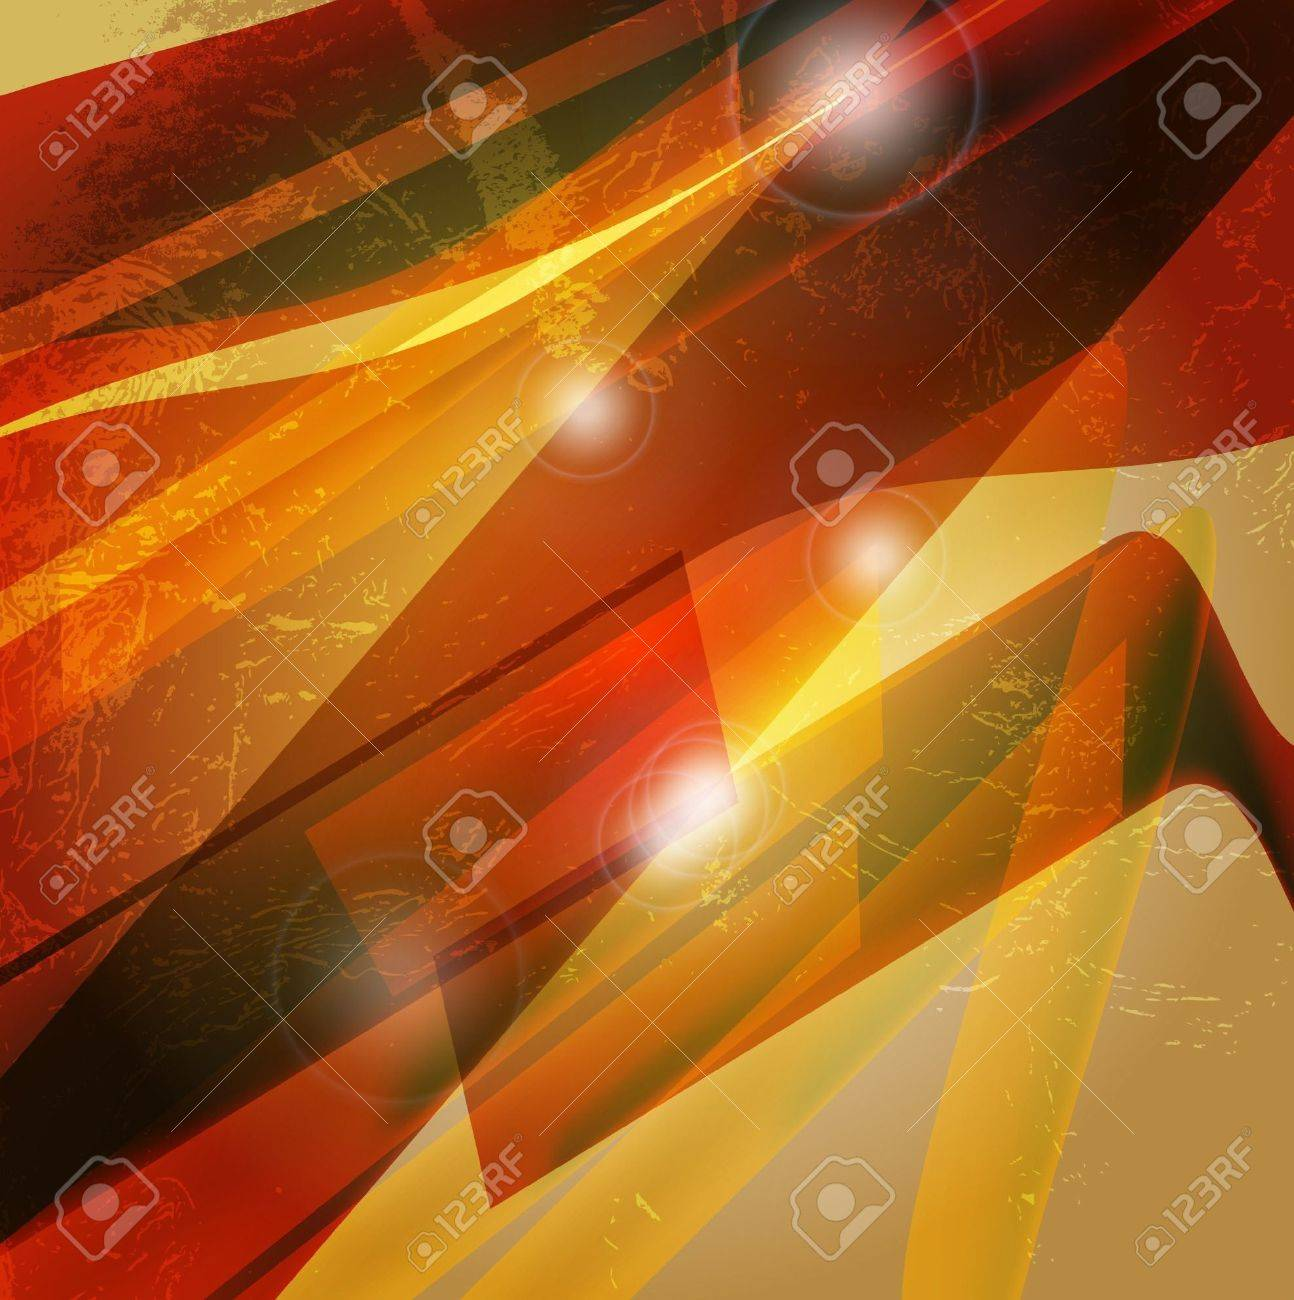 Abstract 3d technology lines with light background. Stock Vector - 11144593